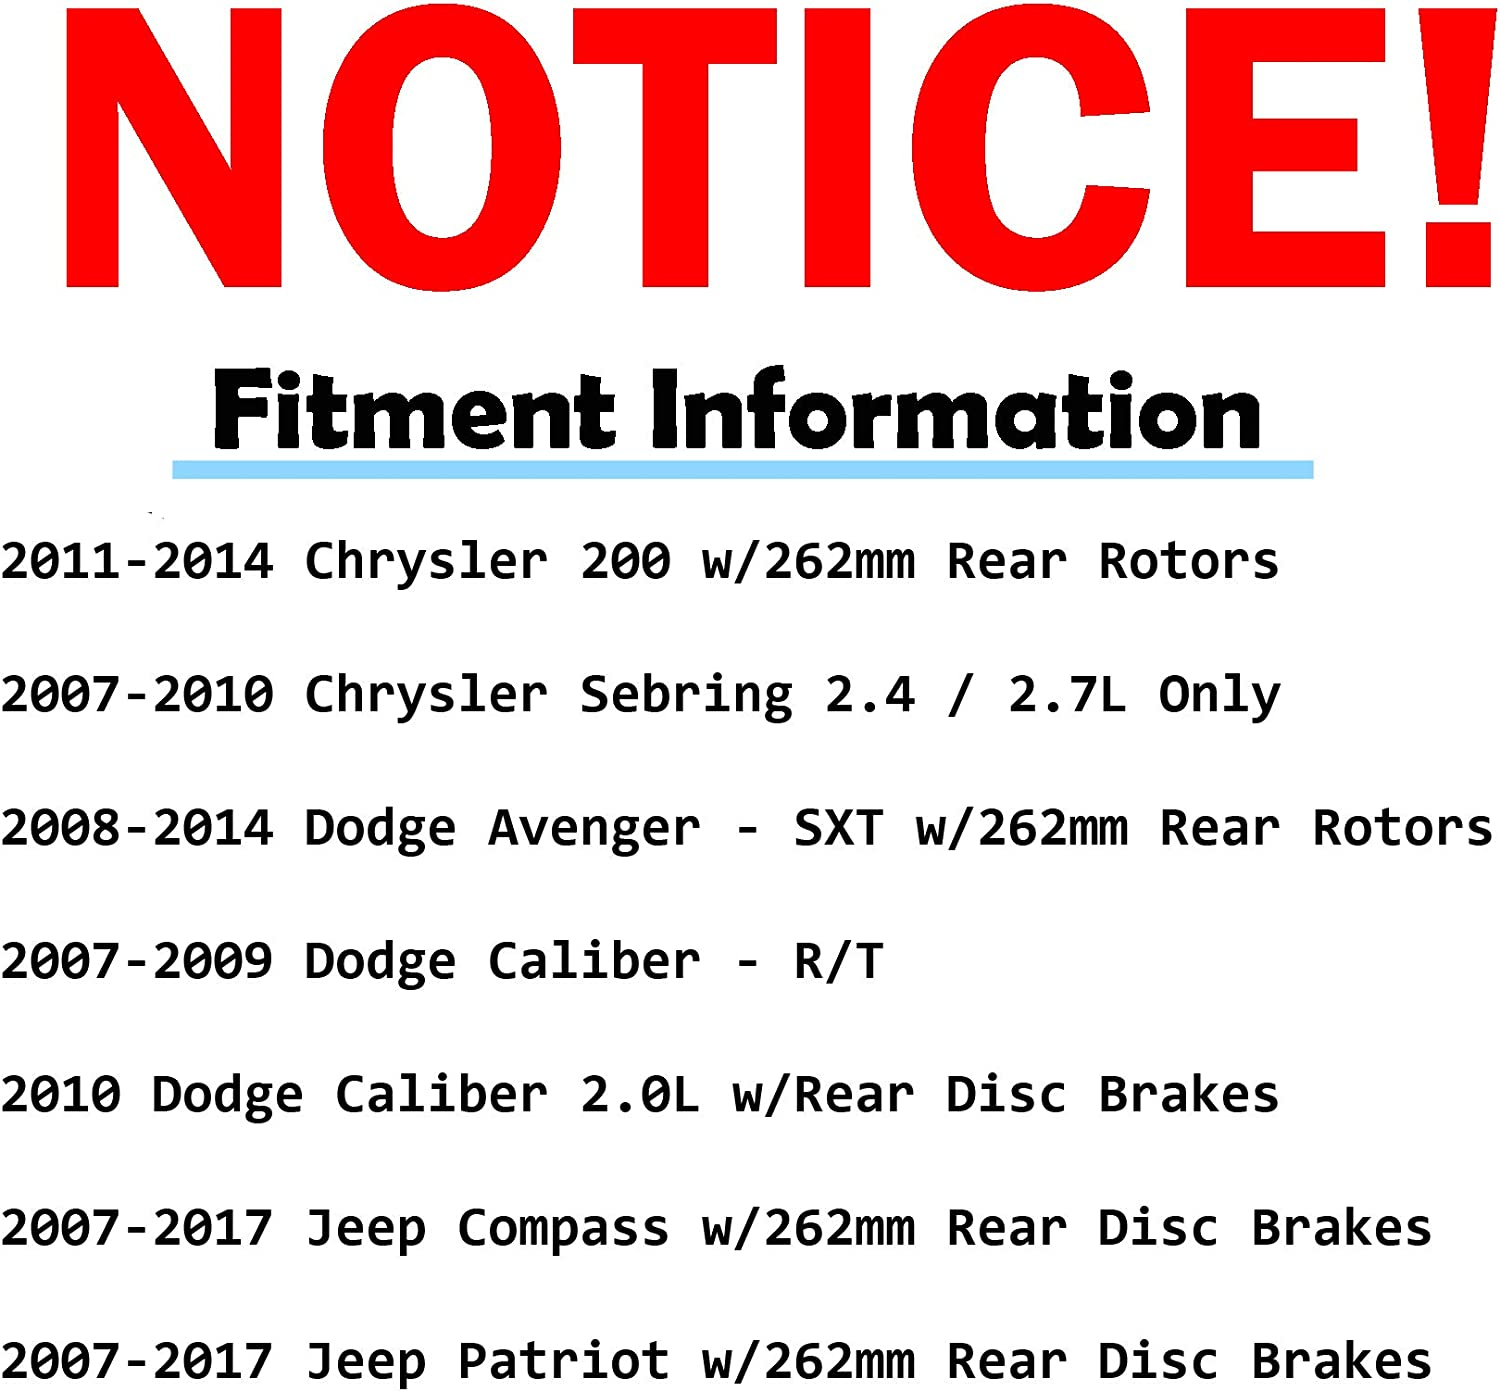 07-10 Caliber 07-10 Sebring Detroit Axle - Jeep Compass//Patriot Front 295mm and Rear 262mm Drilled and Slotted Brake Kit Rotors w//Ceramic Pads for 11-14 Chrysler 200 - - 08-14 Dodge Avenger -